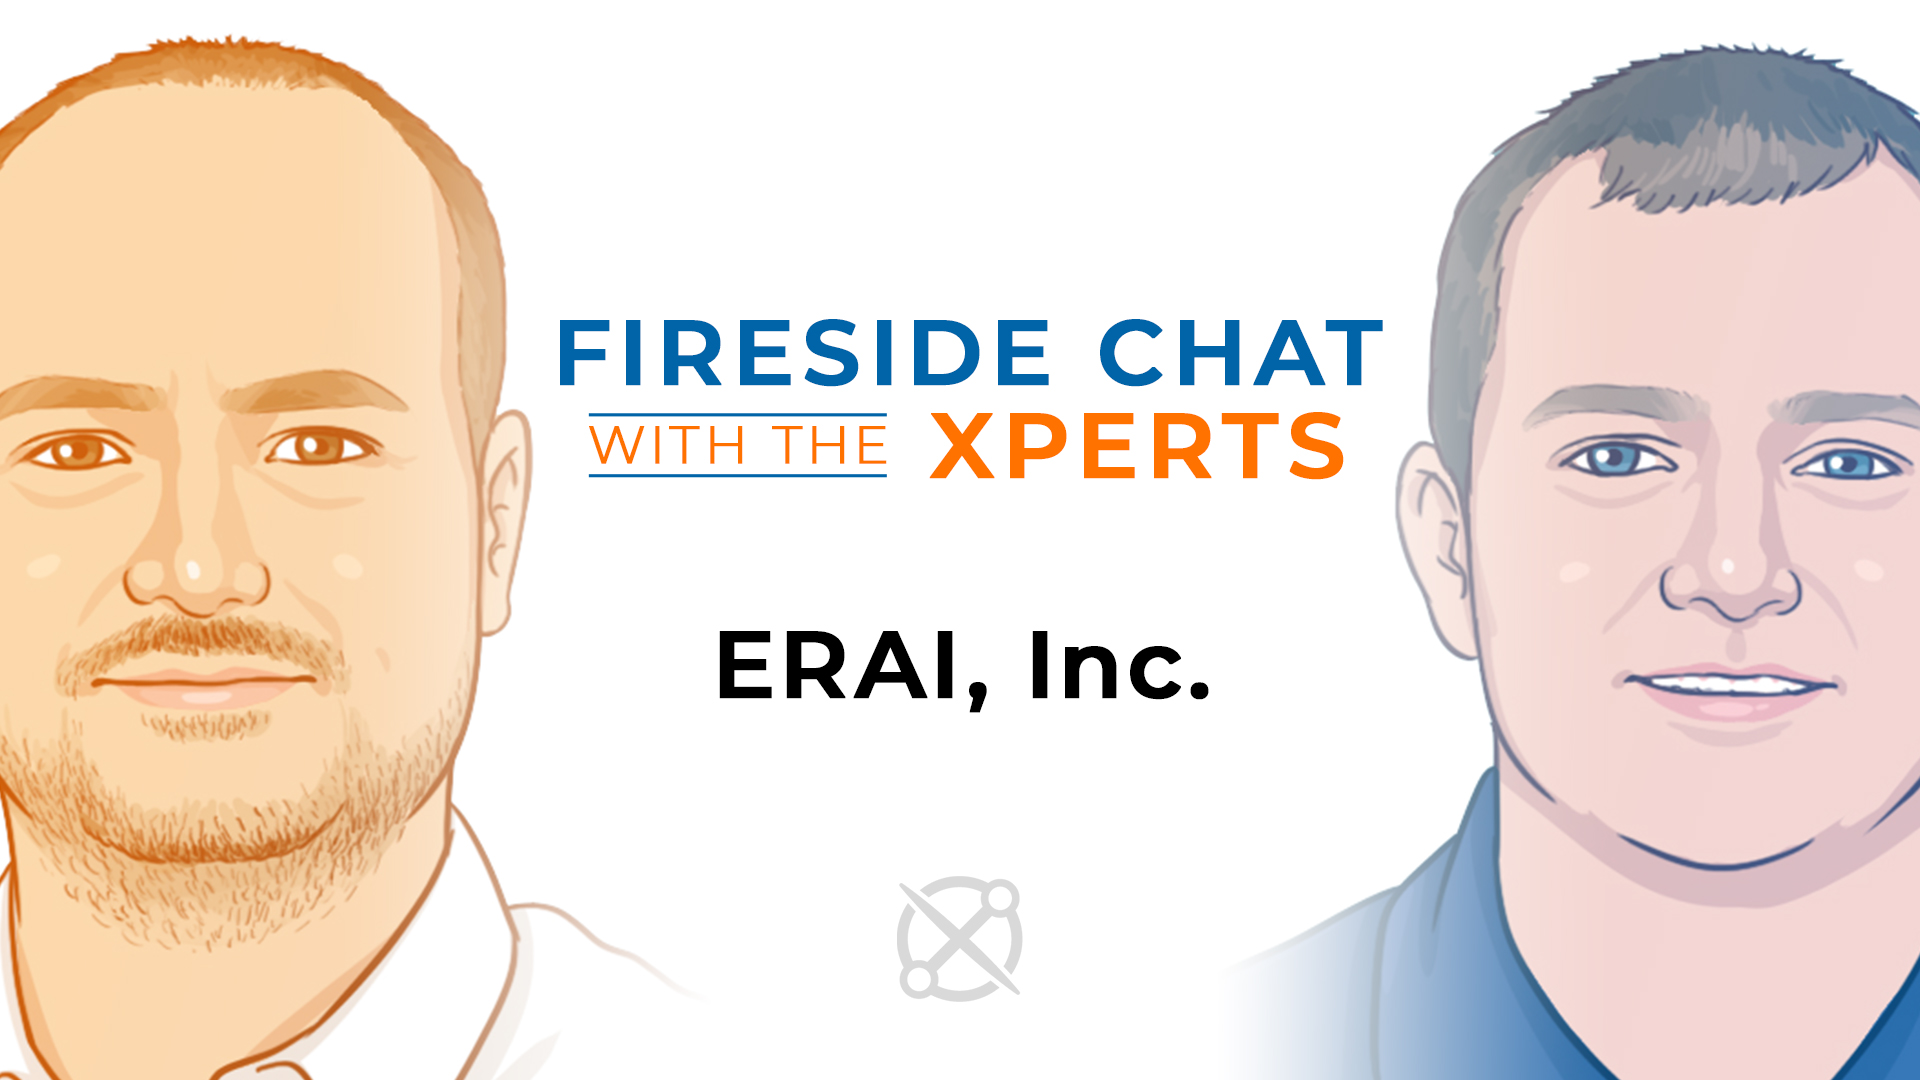 Fireside Chat with the Xperts: Semiconductor Shortage, Fraud, and Counterfeits